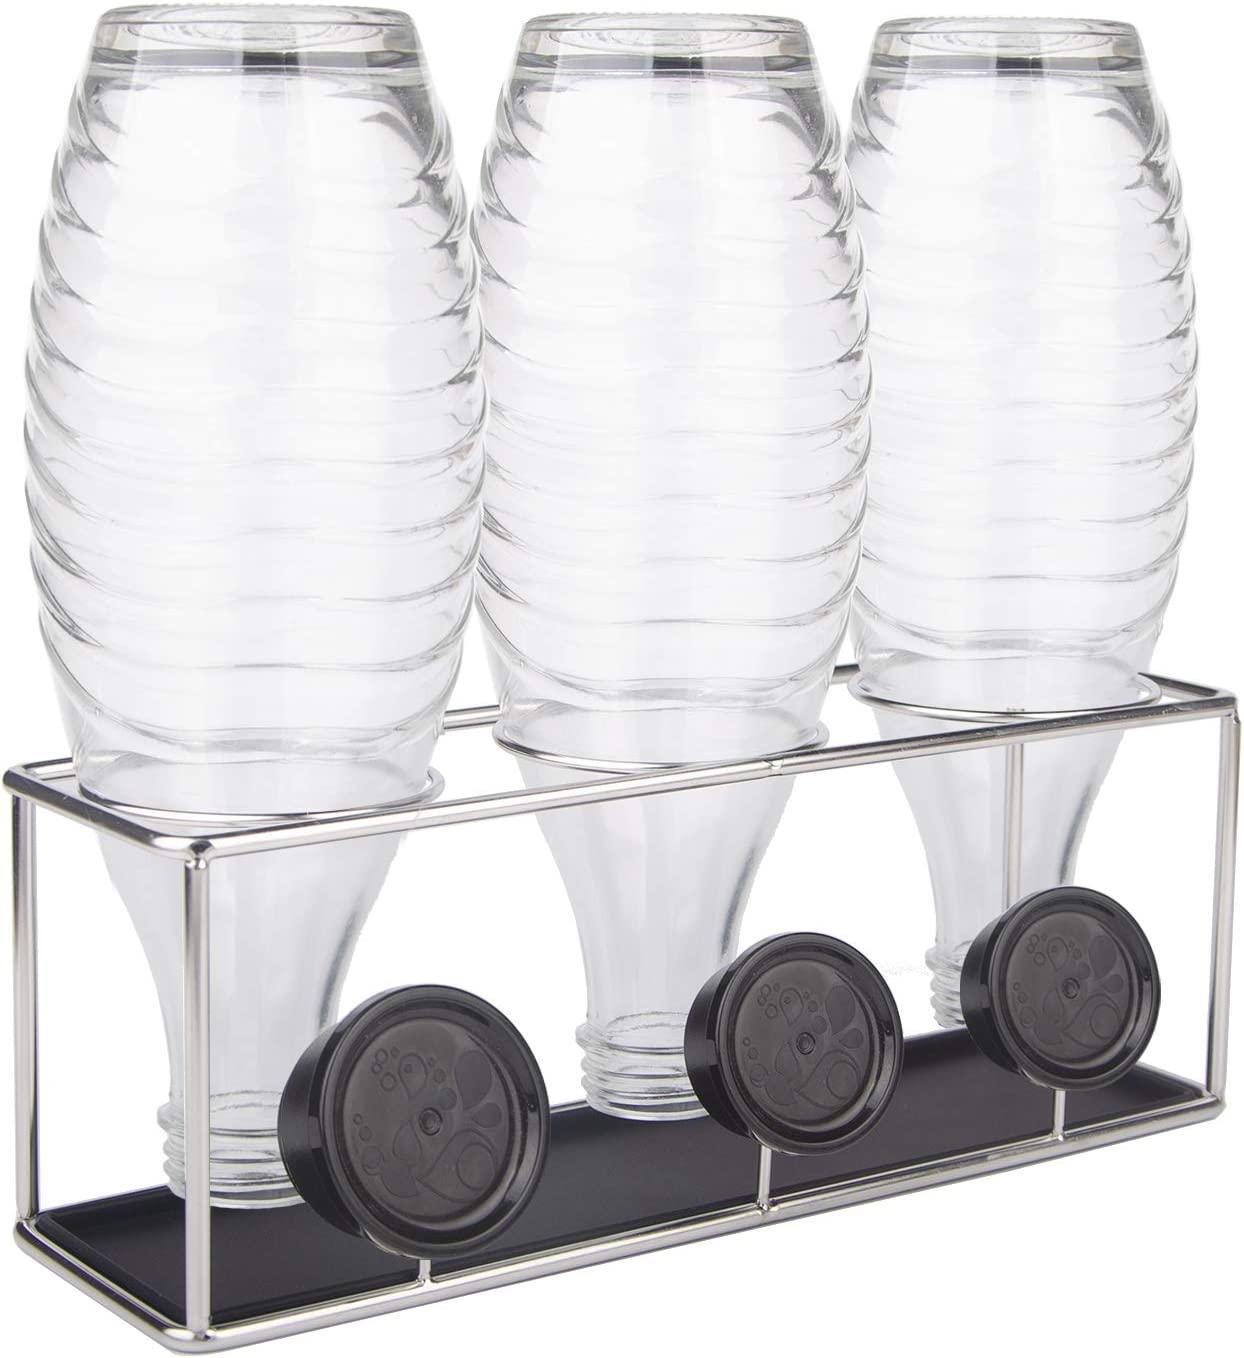 SHAN ZU Bottle Holder for SodaStream Dishwasher Safe 304 Stainless Steel Drainer Rack with Removable Drip Tray Drying Rack of Carafe Bottles